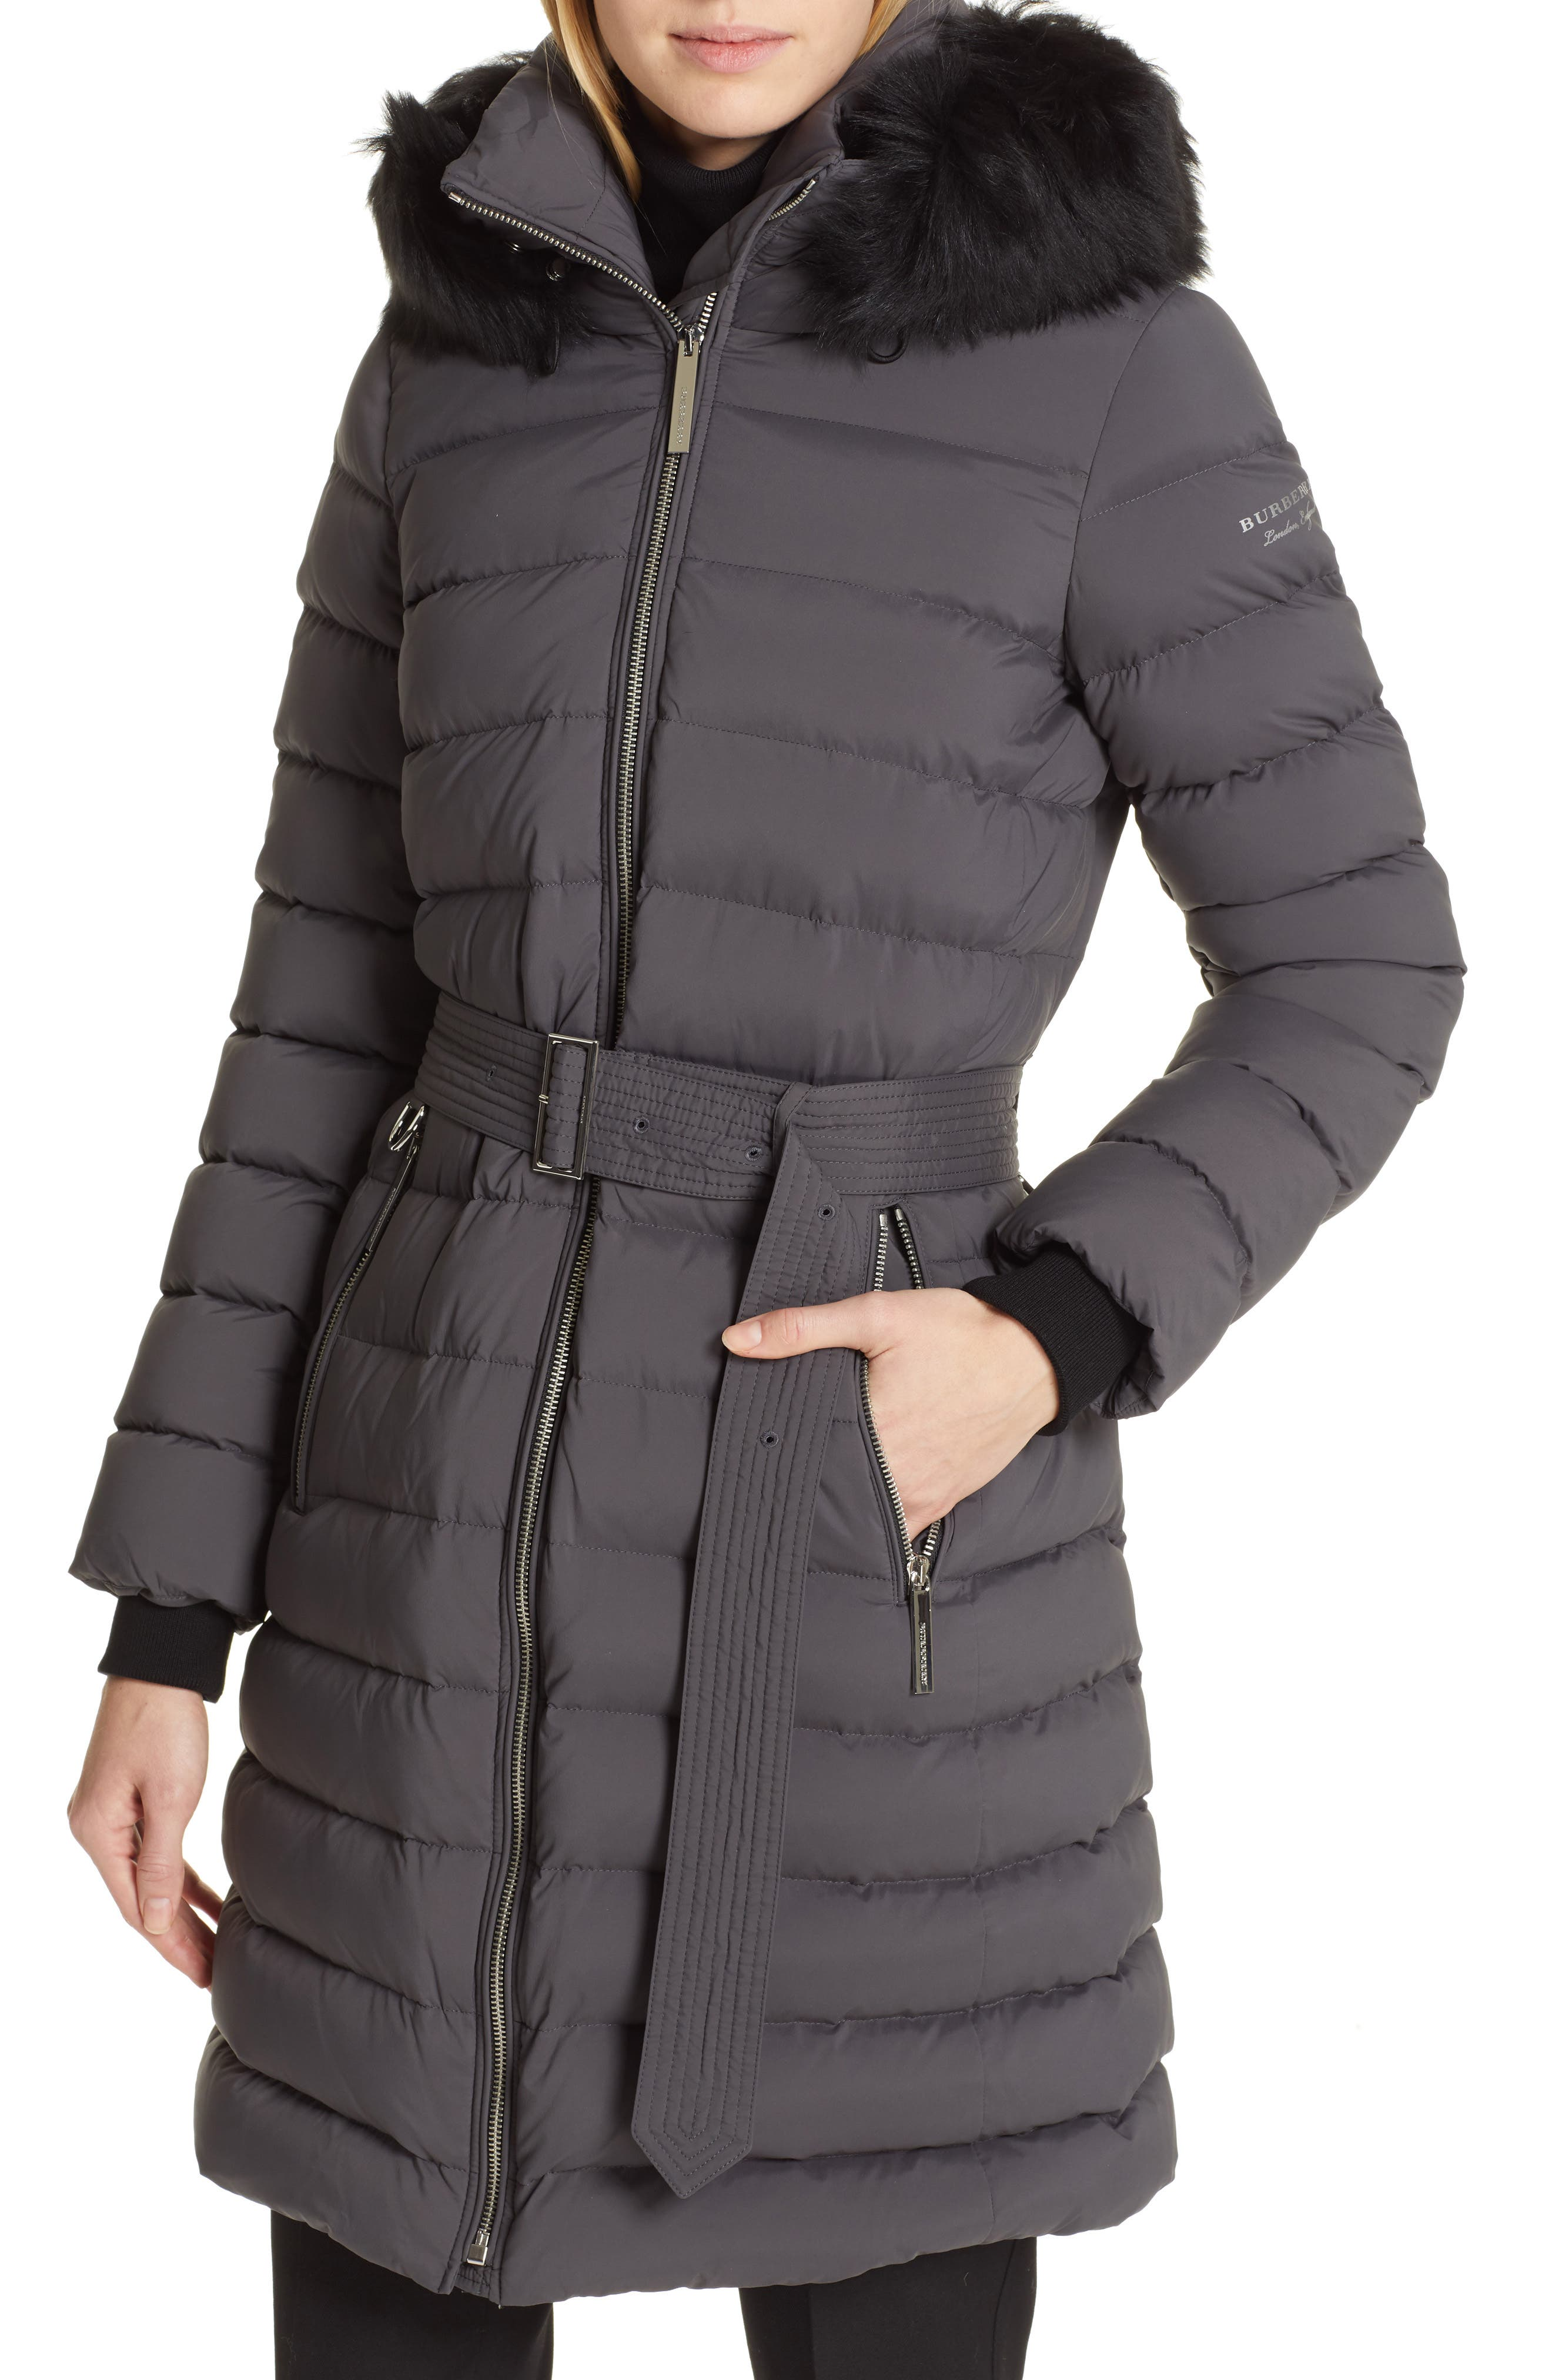 Limehouse Quilted Down Puffer Coat with Removable Genuine Shearling Trim,                             Alternate thumbnail 6, color,                             MID GREY